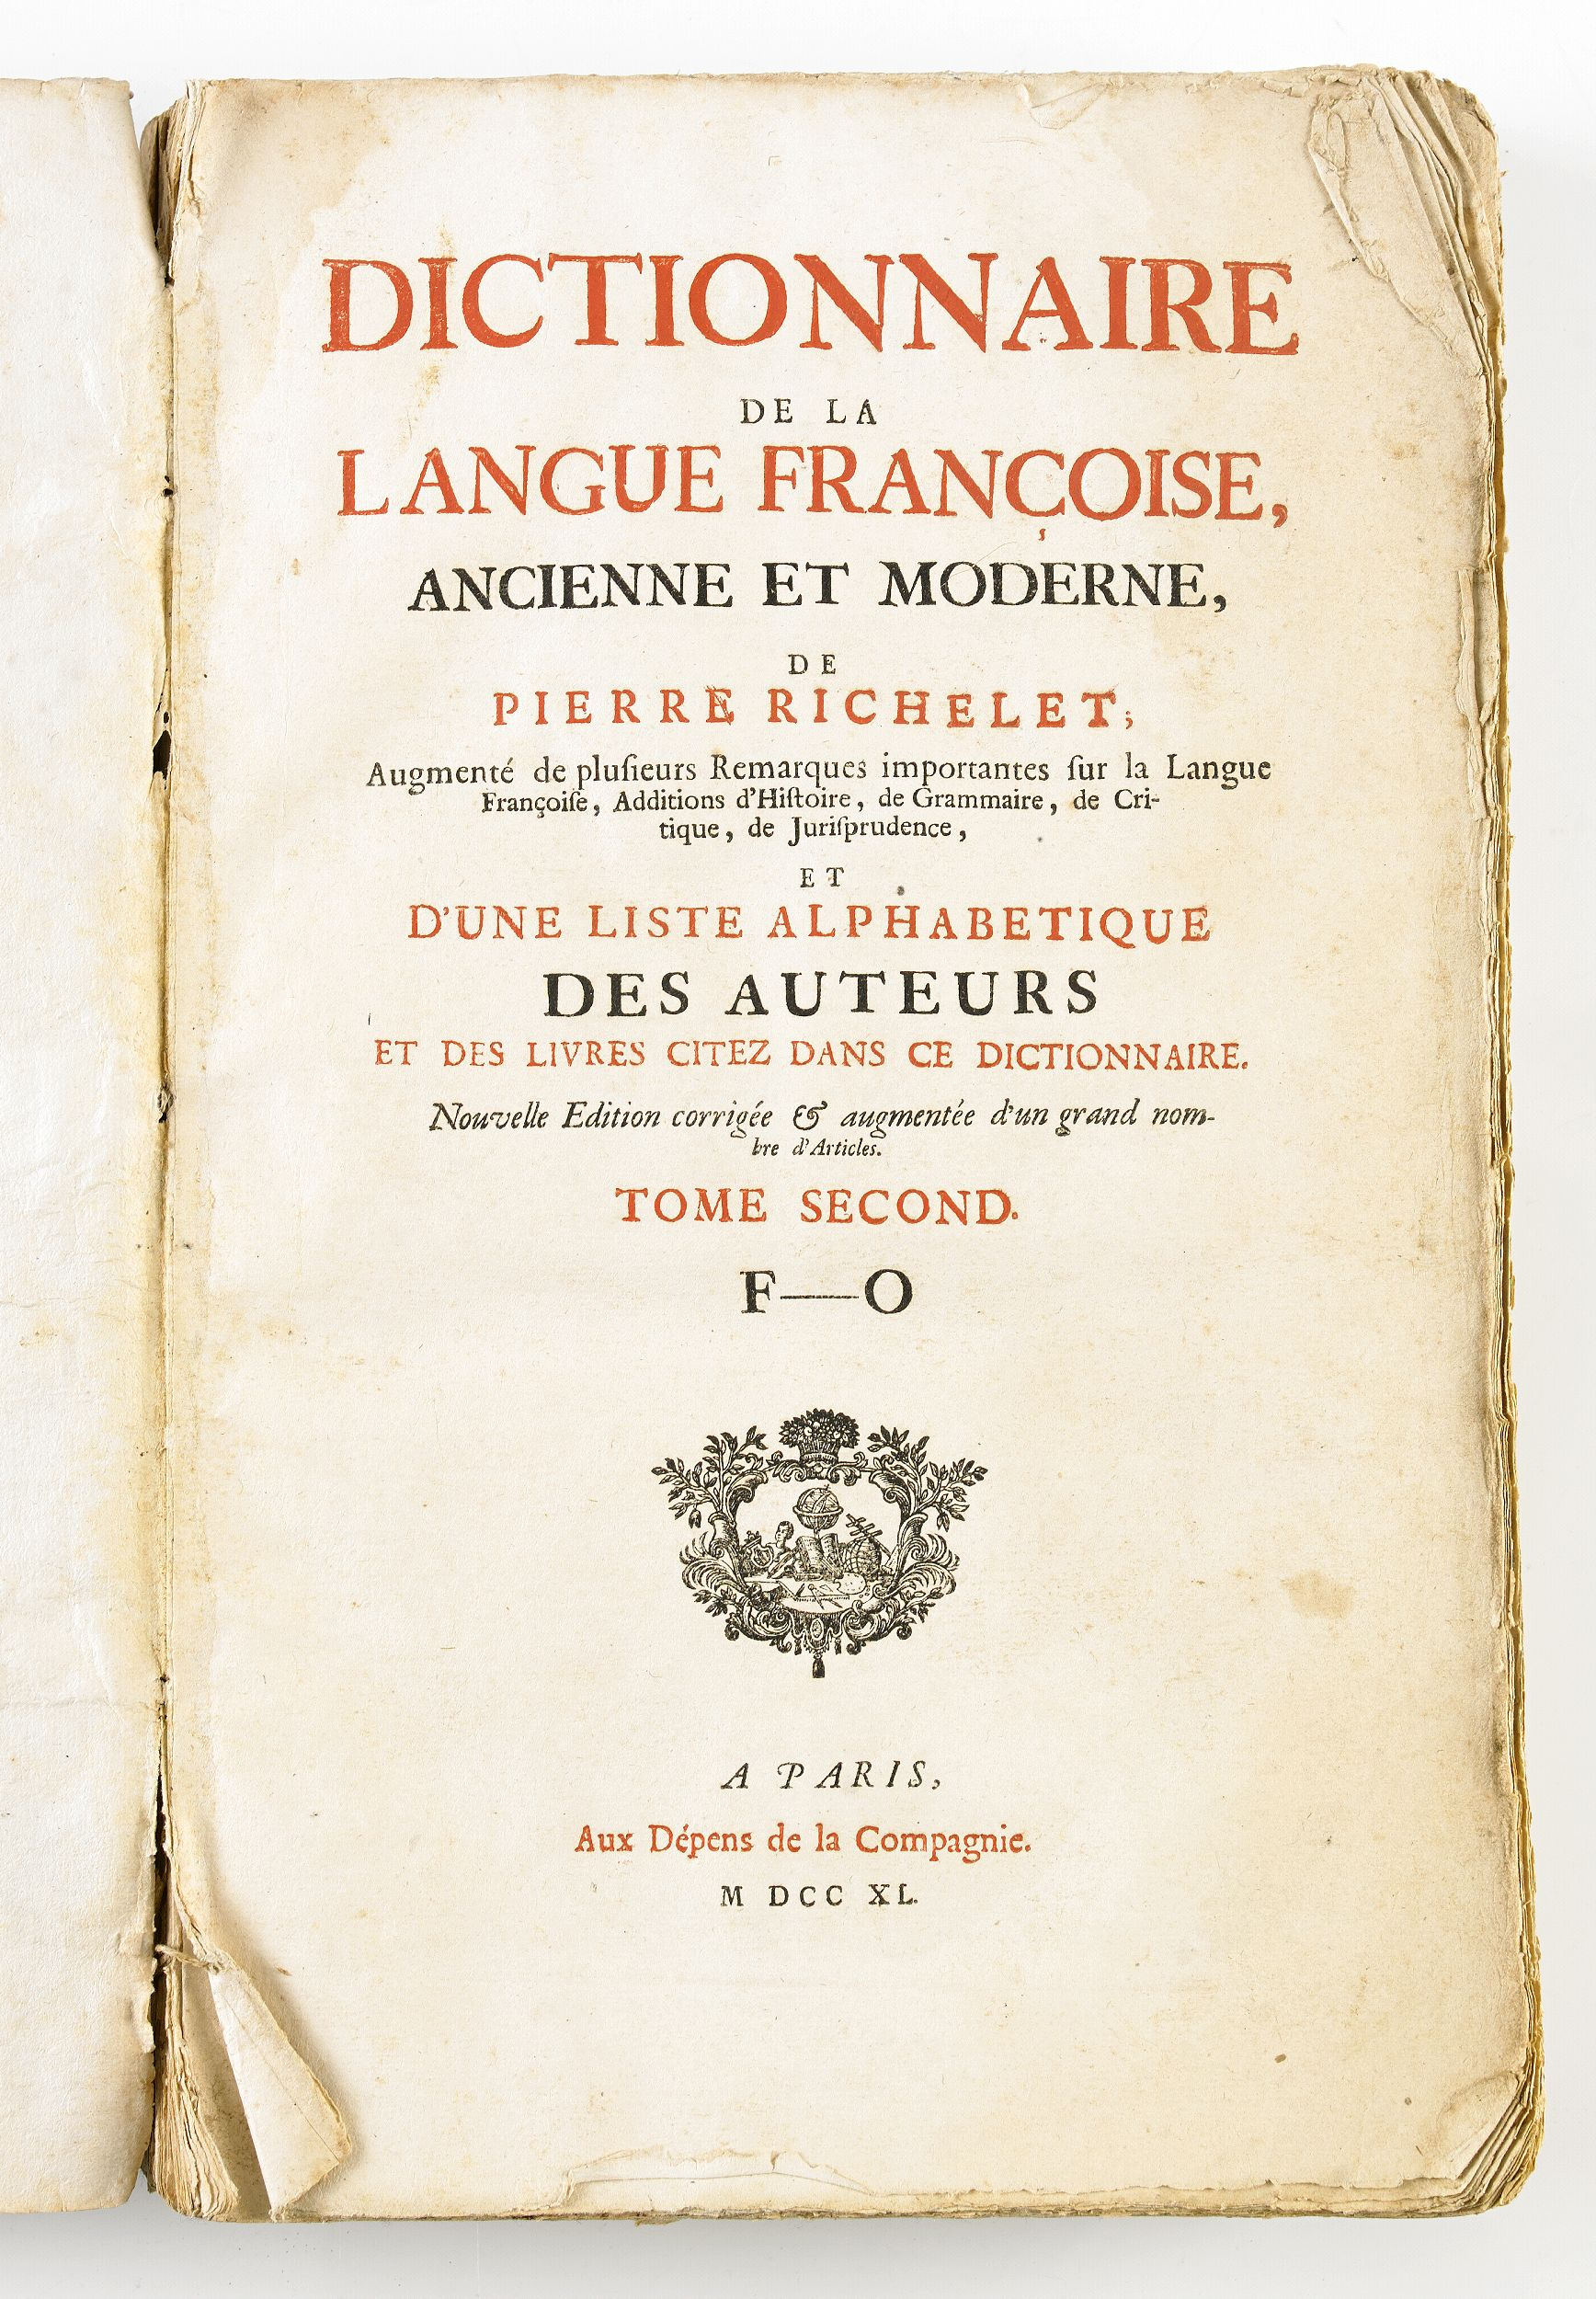 Richelet's classical French dictionary